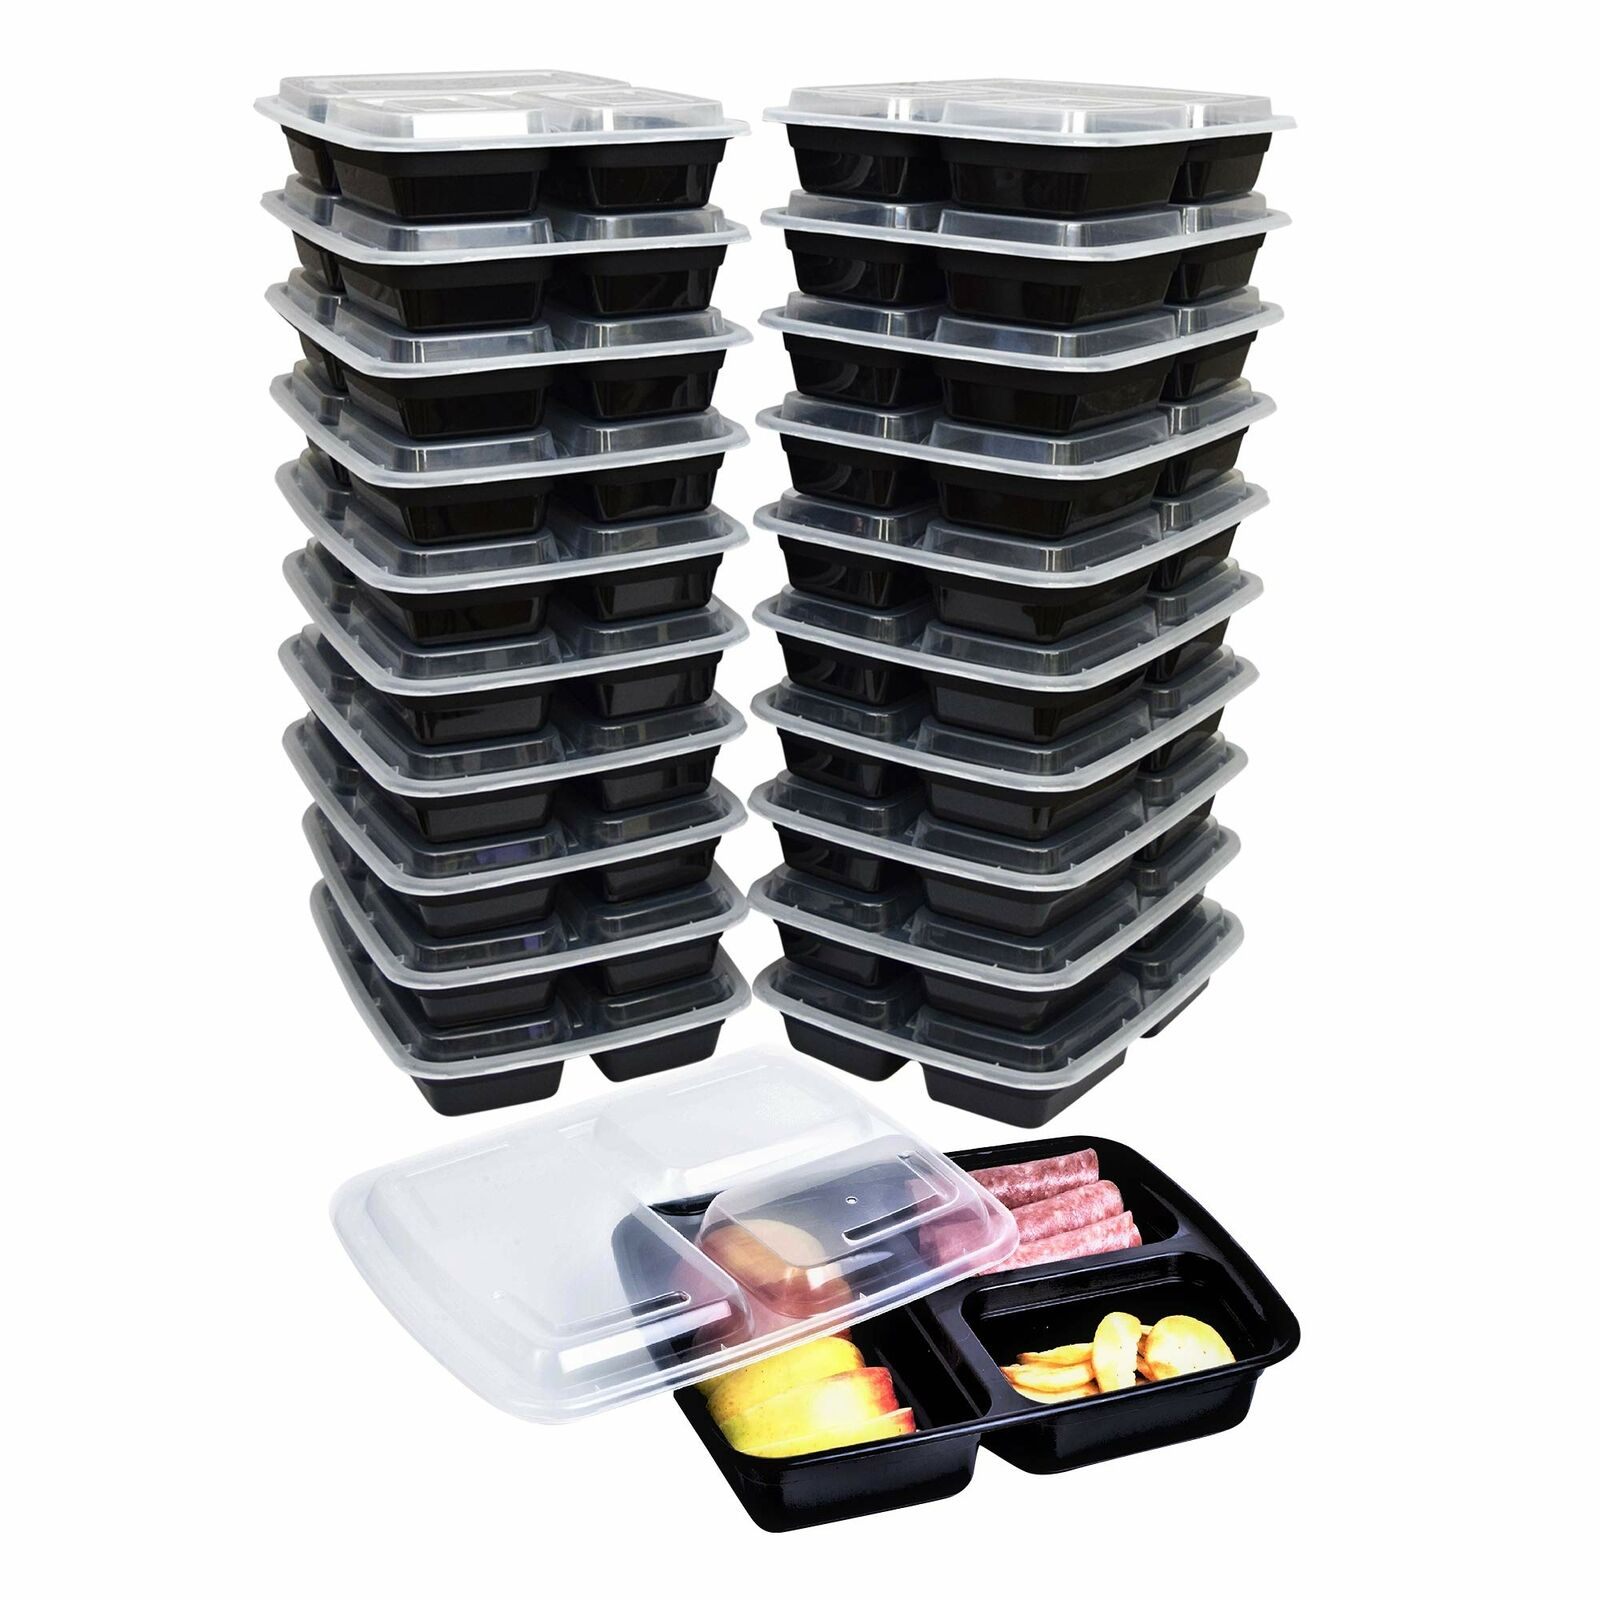 Green Direct 3 Compartment Meal Prep Containers with lids - Plastic Lunch Boxes 1